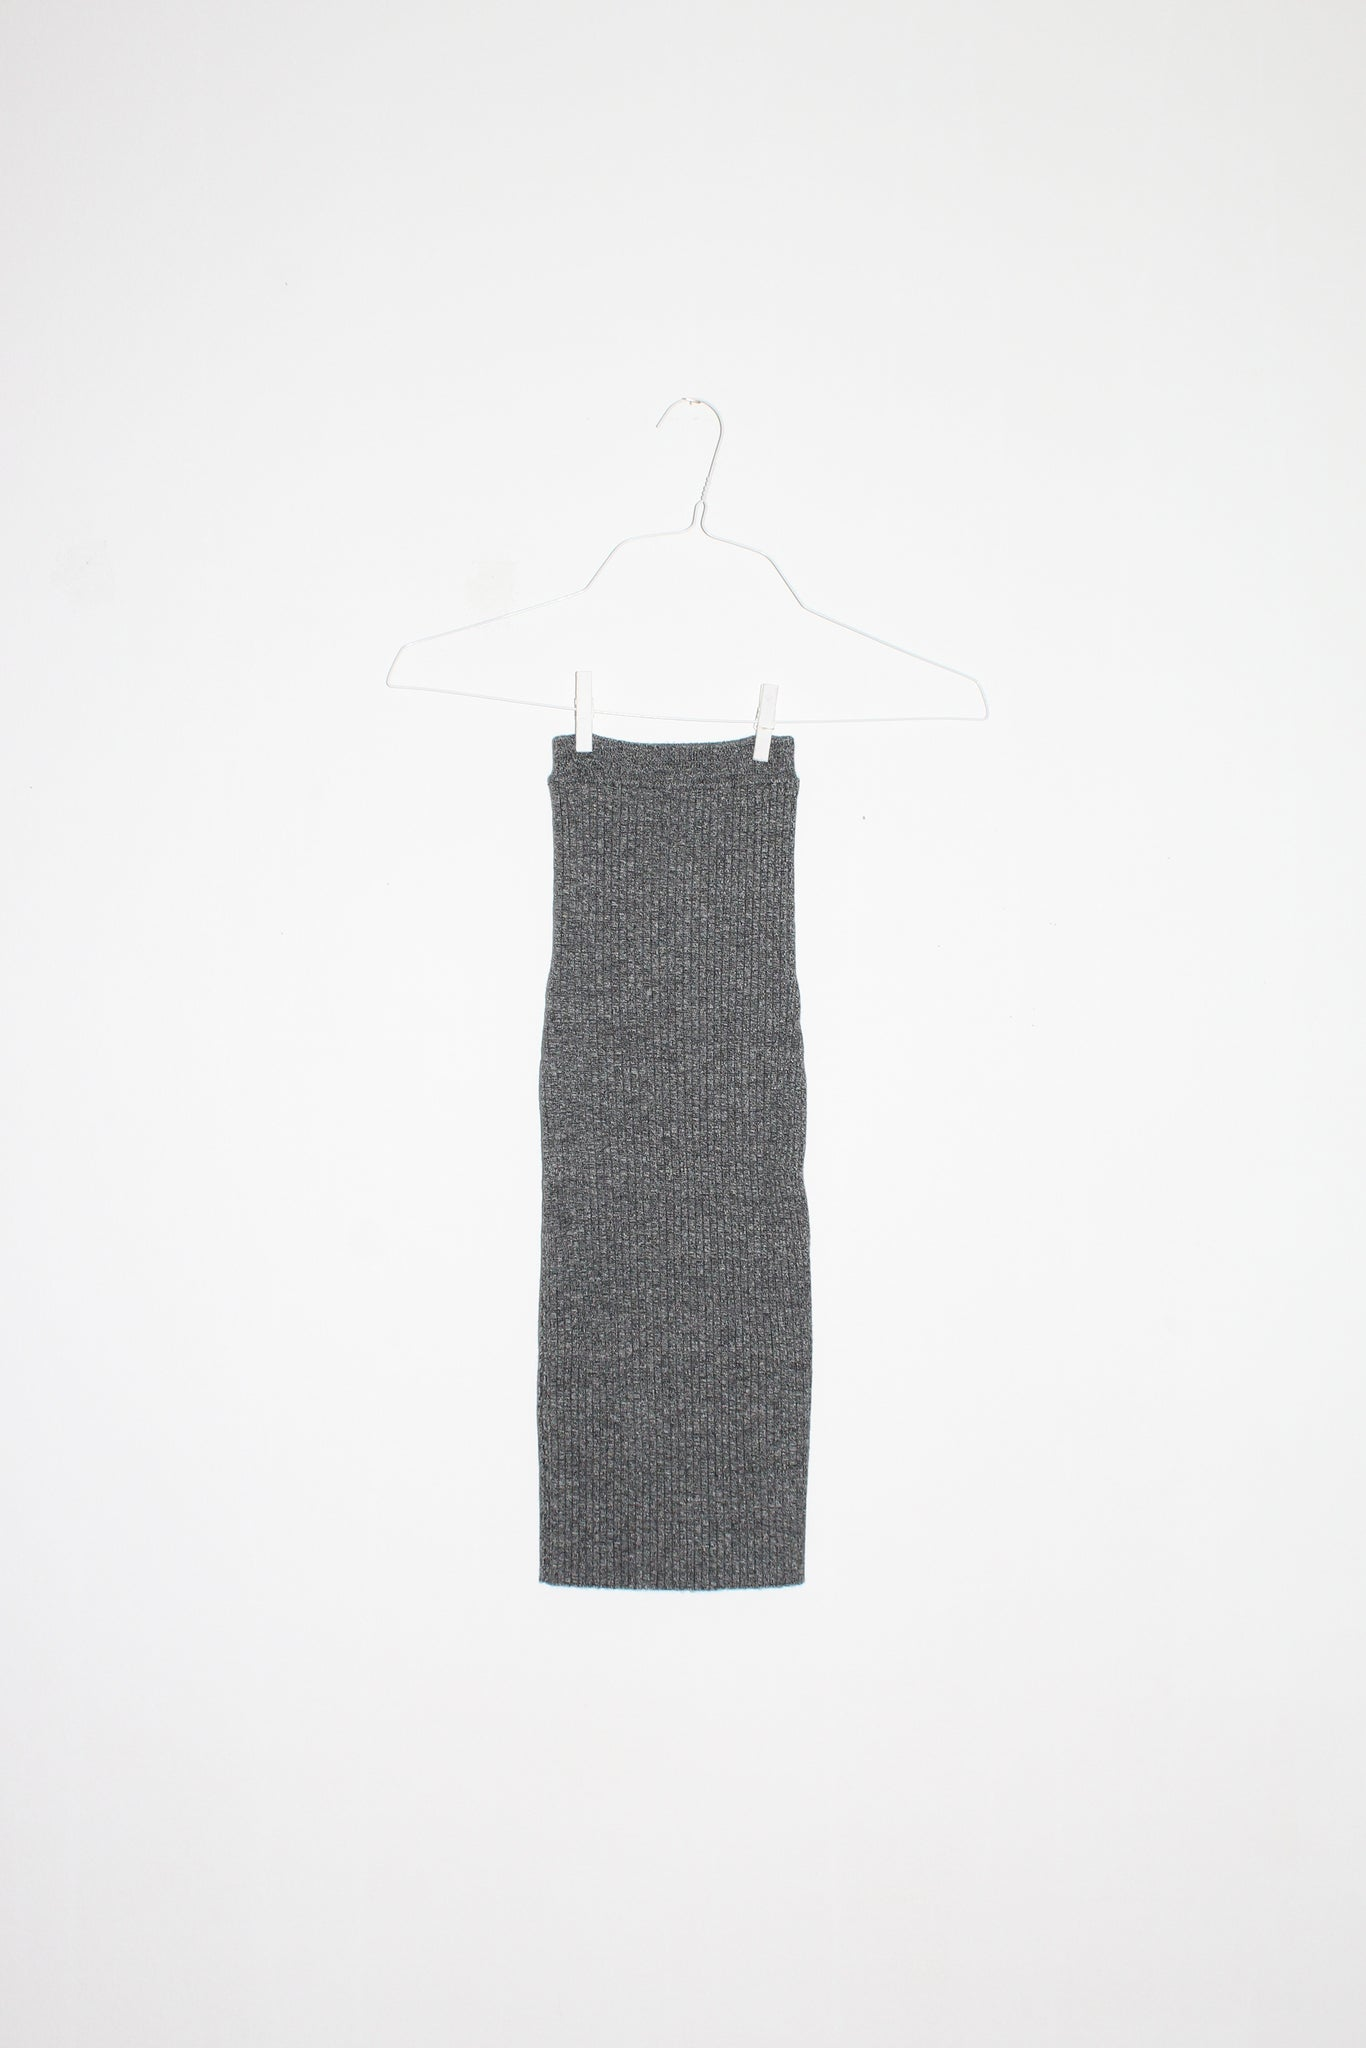 NONNA Tube Skirt in White Noise